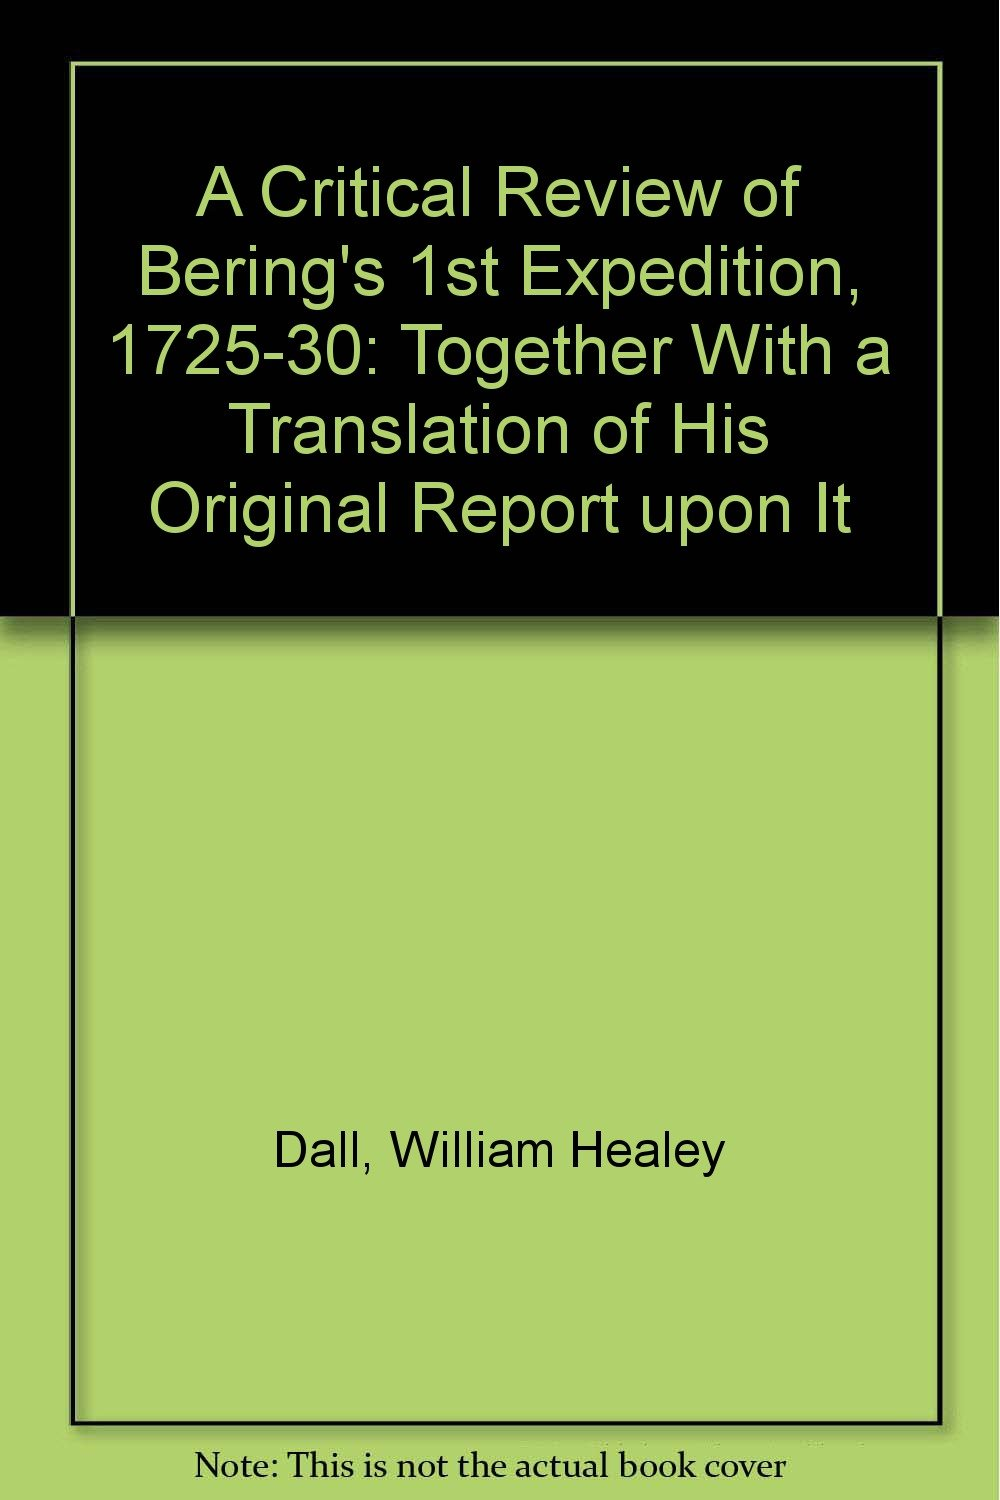 Download A Critical Review of Bering's 1st Expedition, 1725-30: Together With a Translation of His Original Report upon It pdf